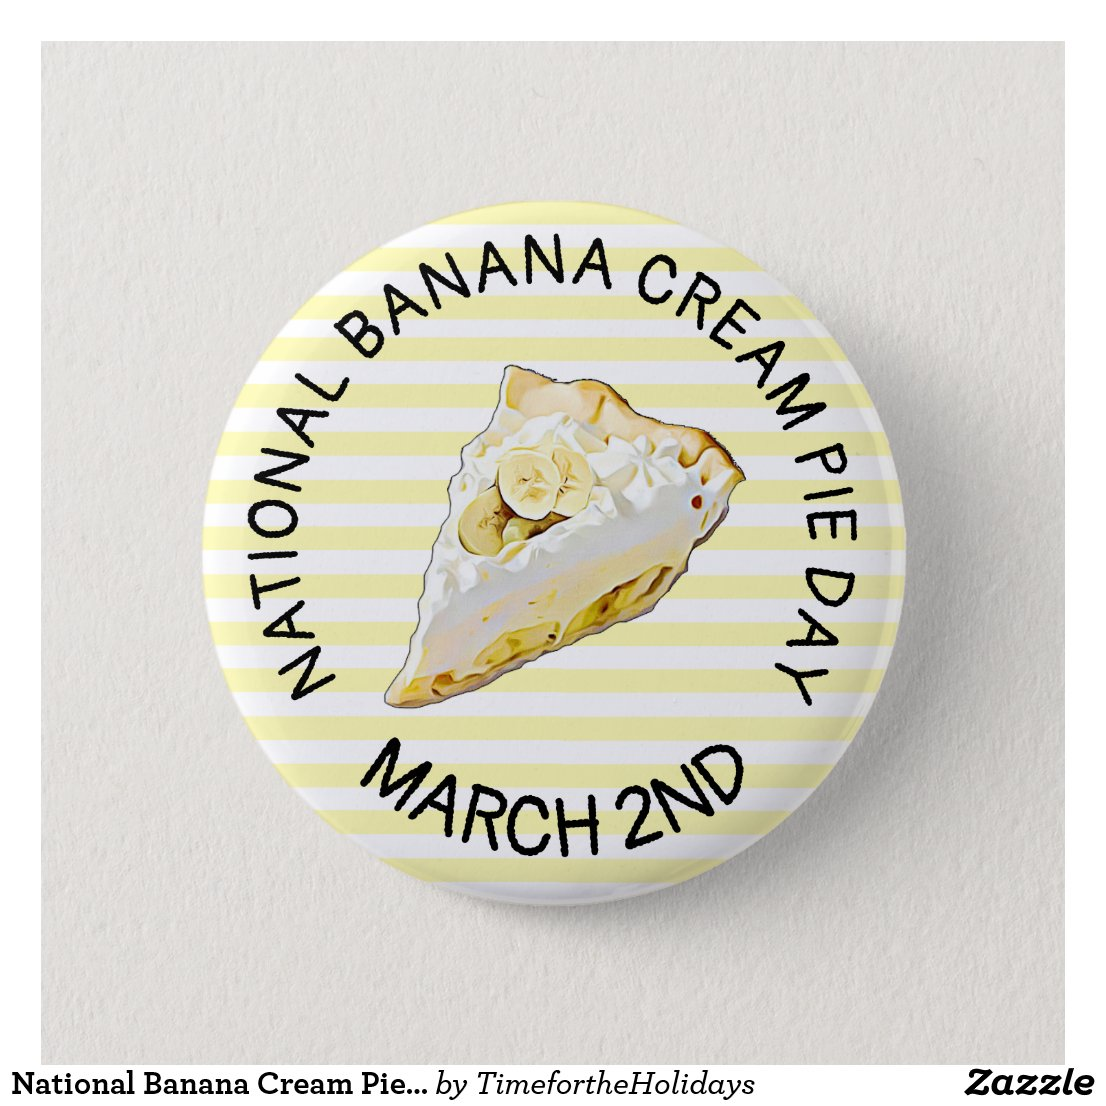 National Banana Cream Pie Day March 2nd Button